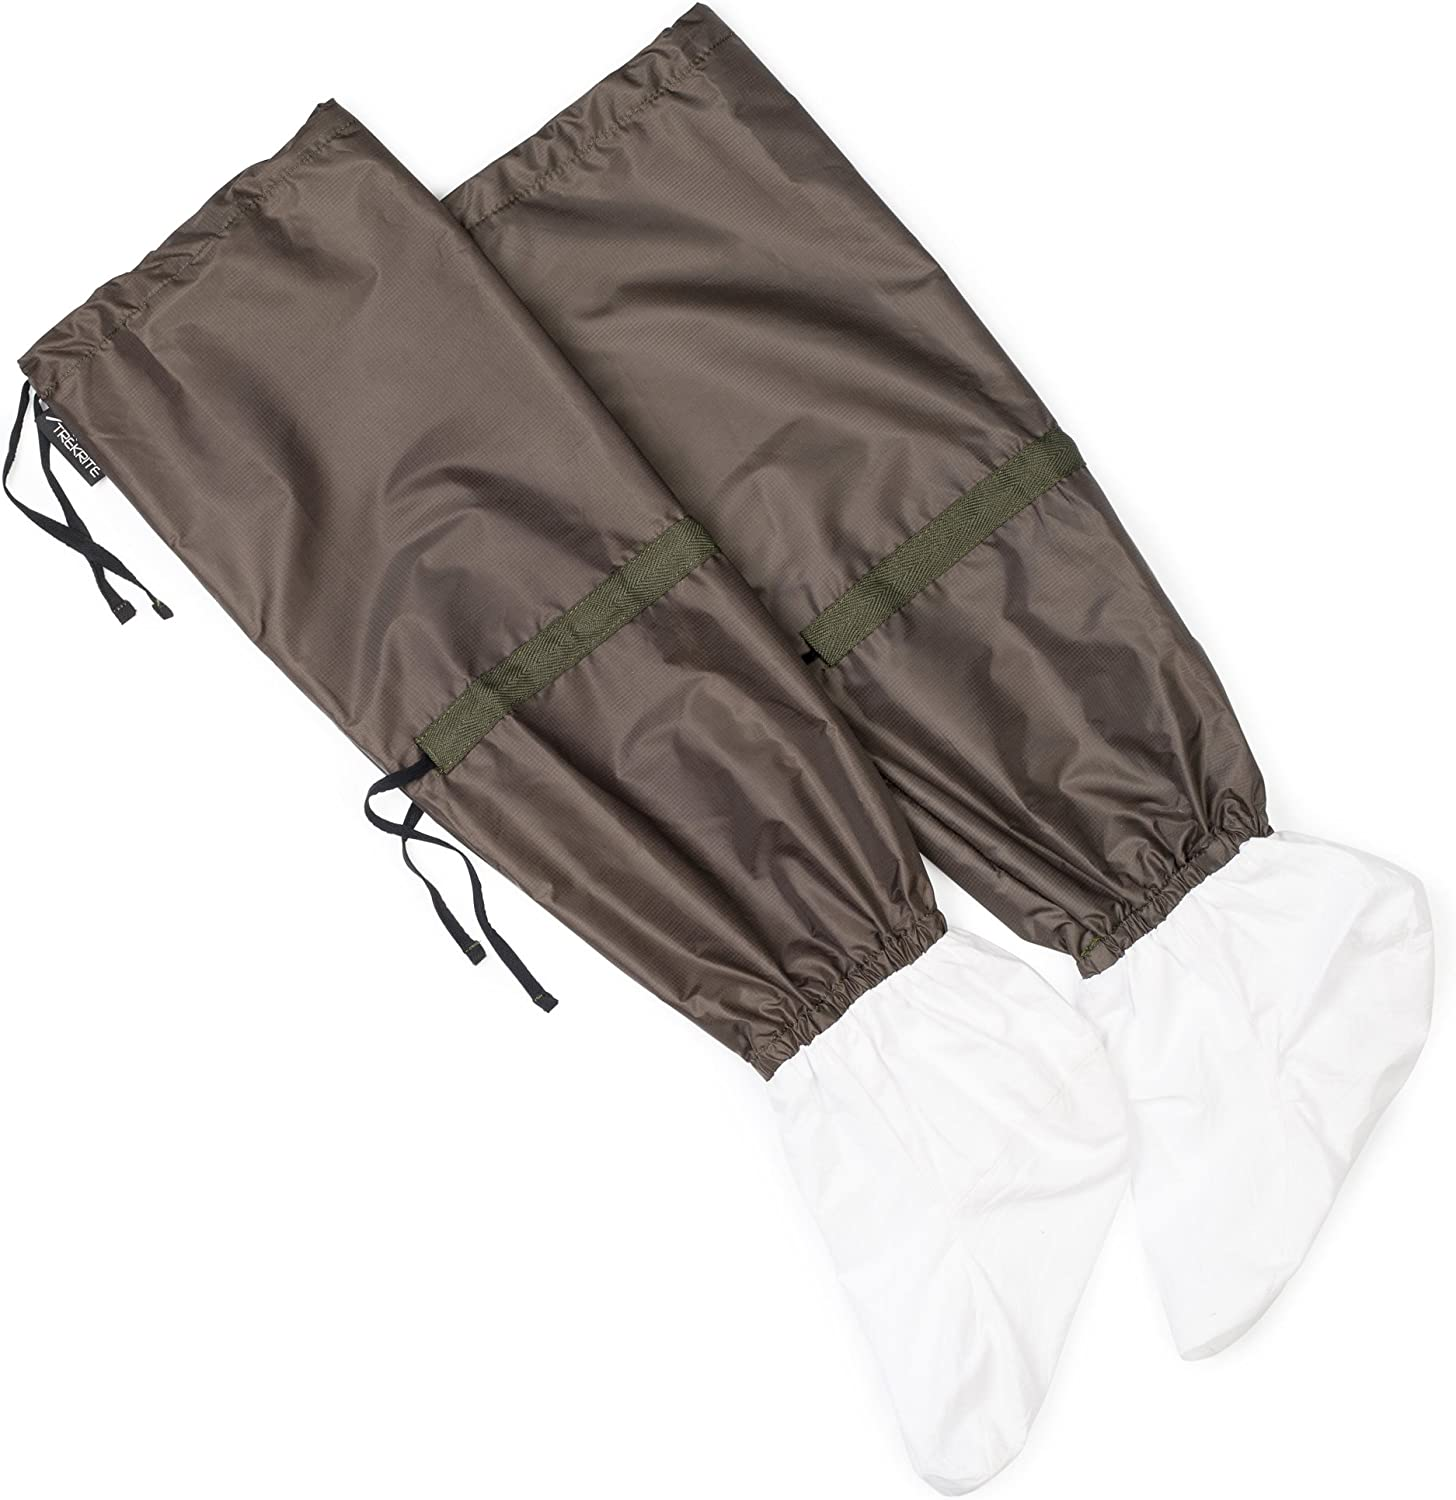 Leech Socks Protect from Leeches One Pair Authentic from Borneo